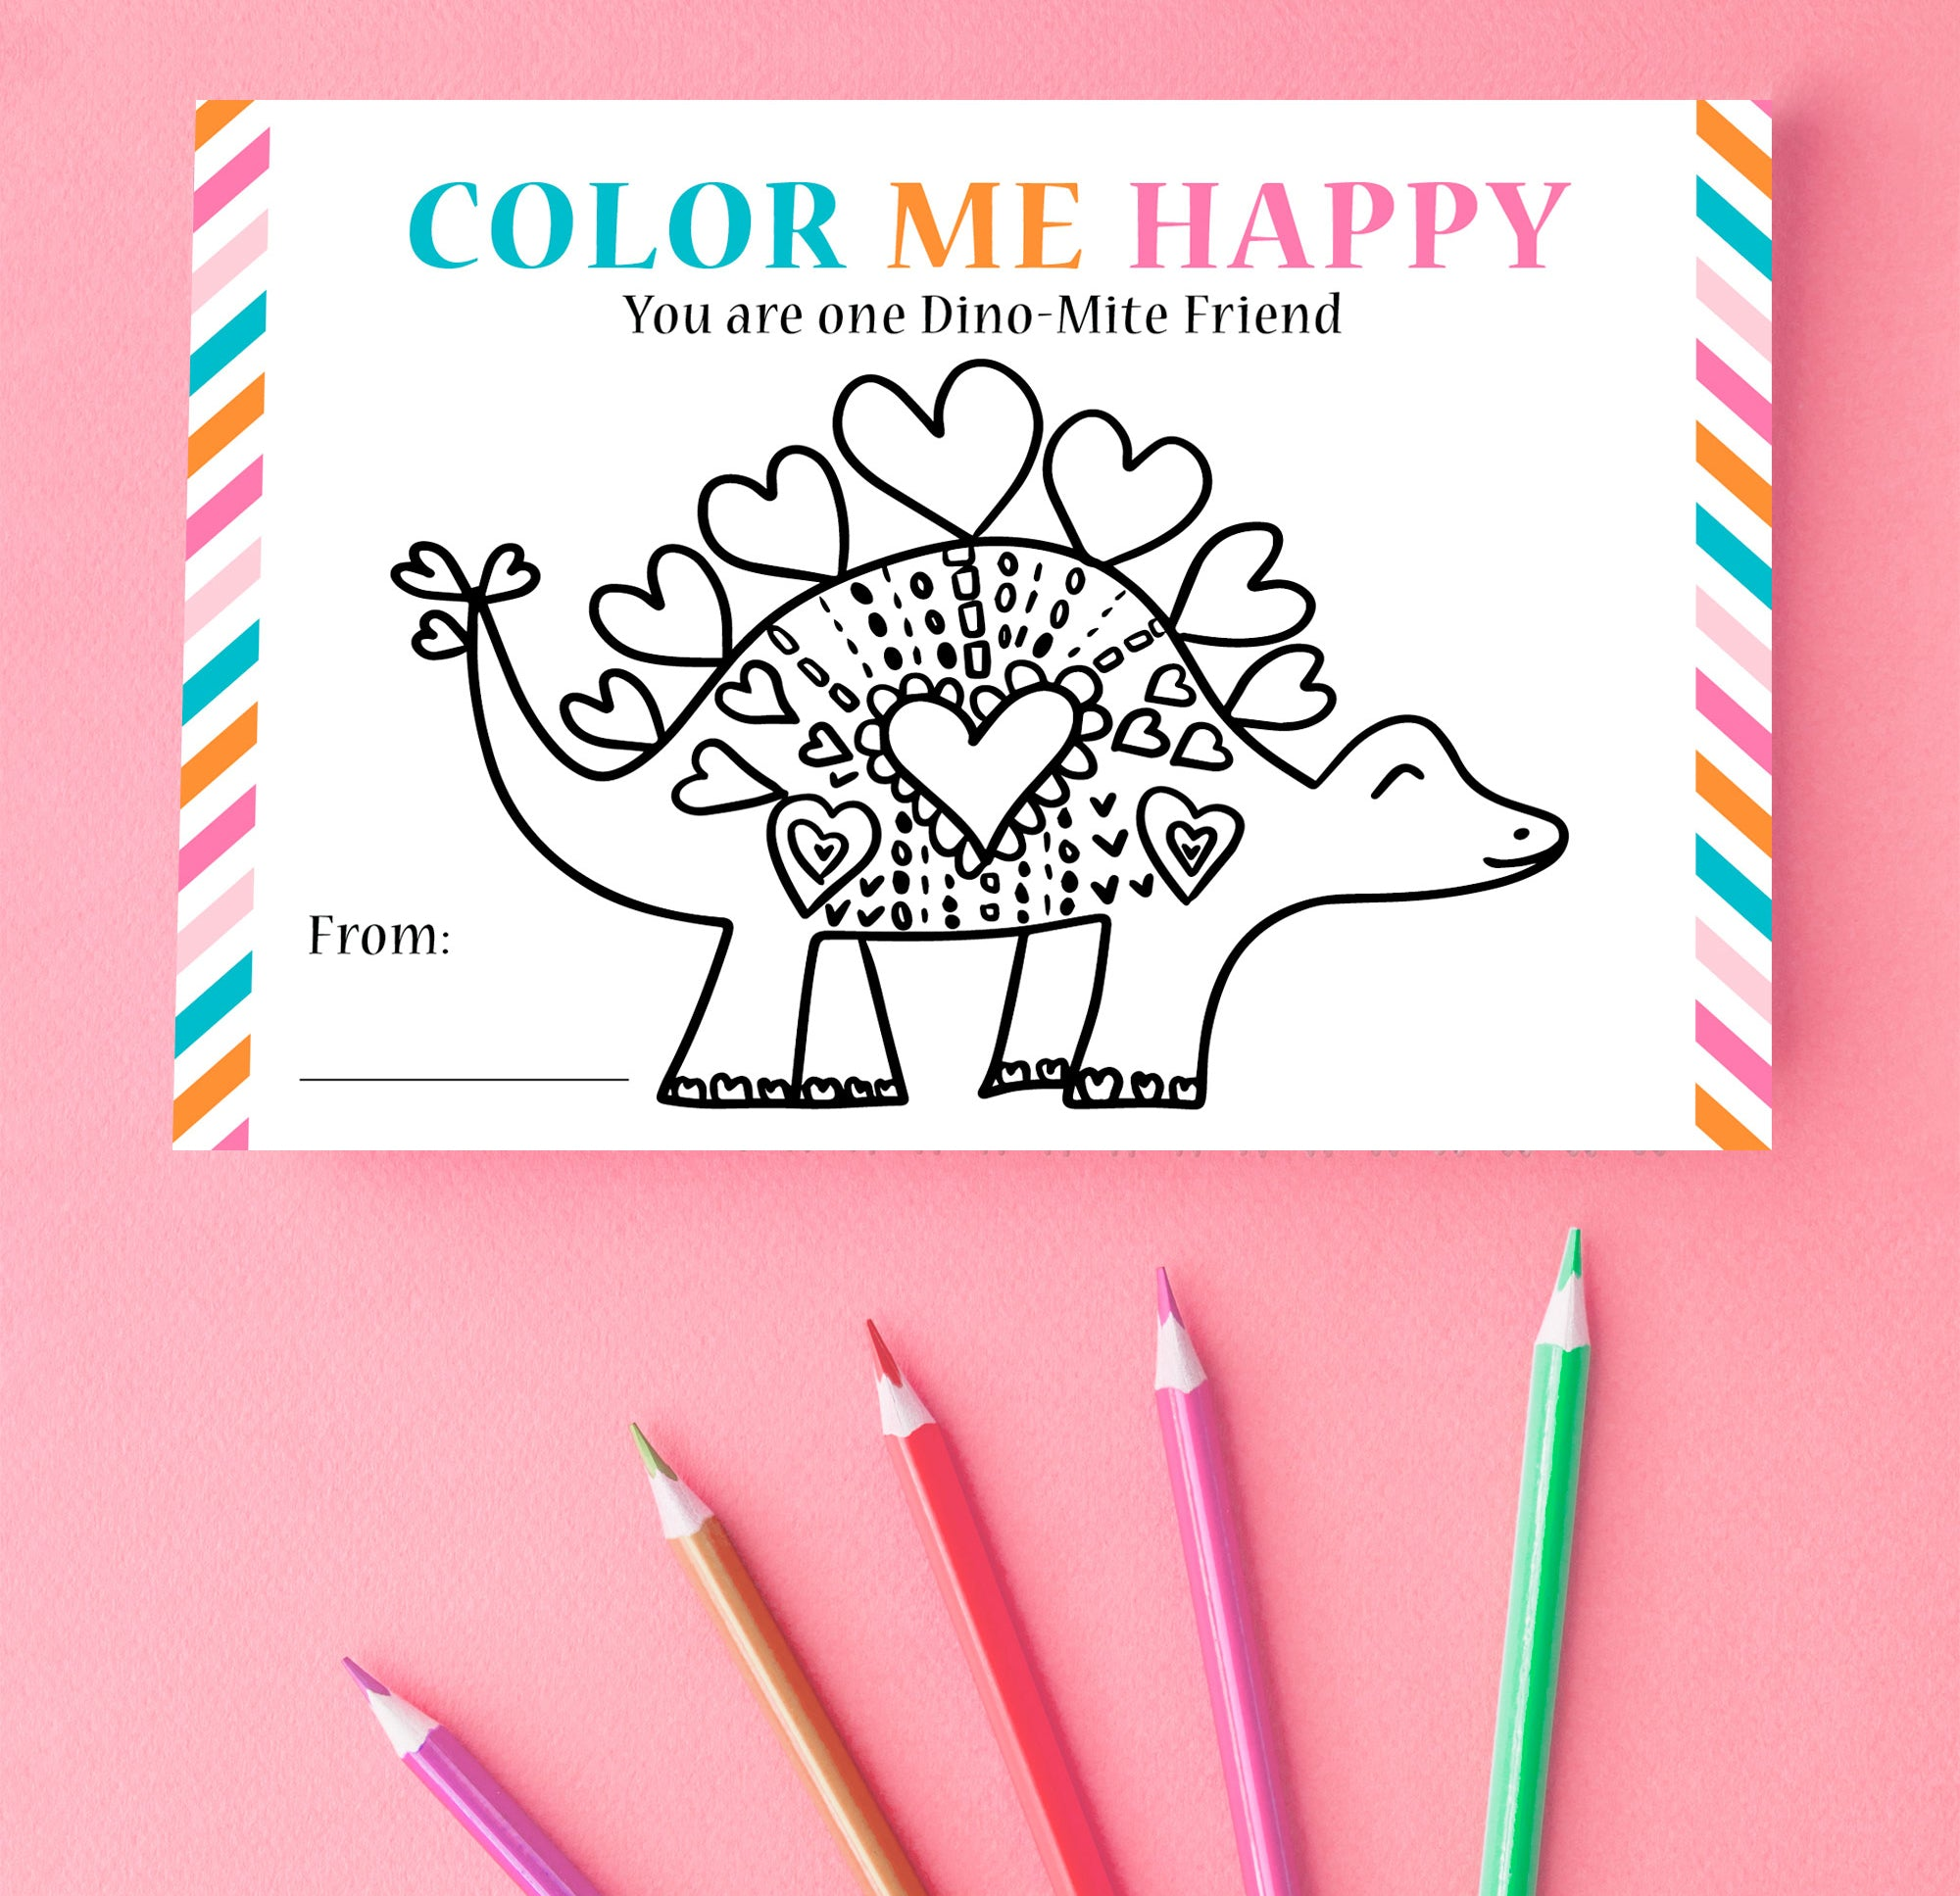 picture regarding Valentine Stationery Free Printable referred to as Printable Coloring Valentines Working day Playing cards for Dinosaur Loving